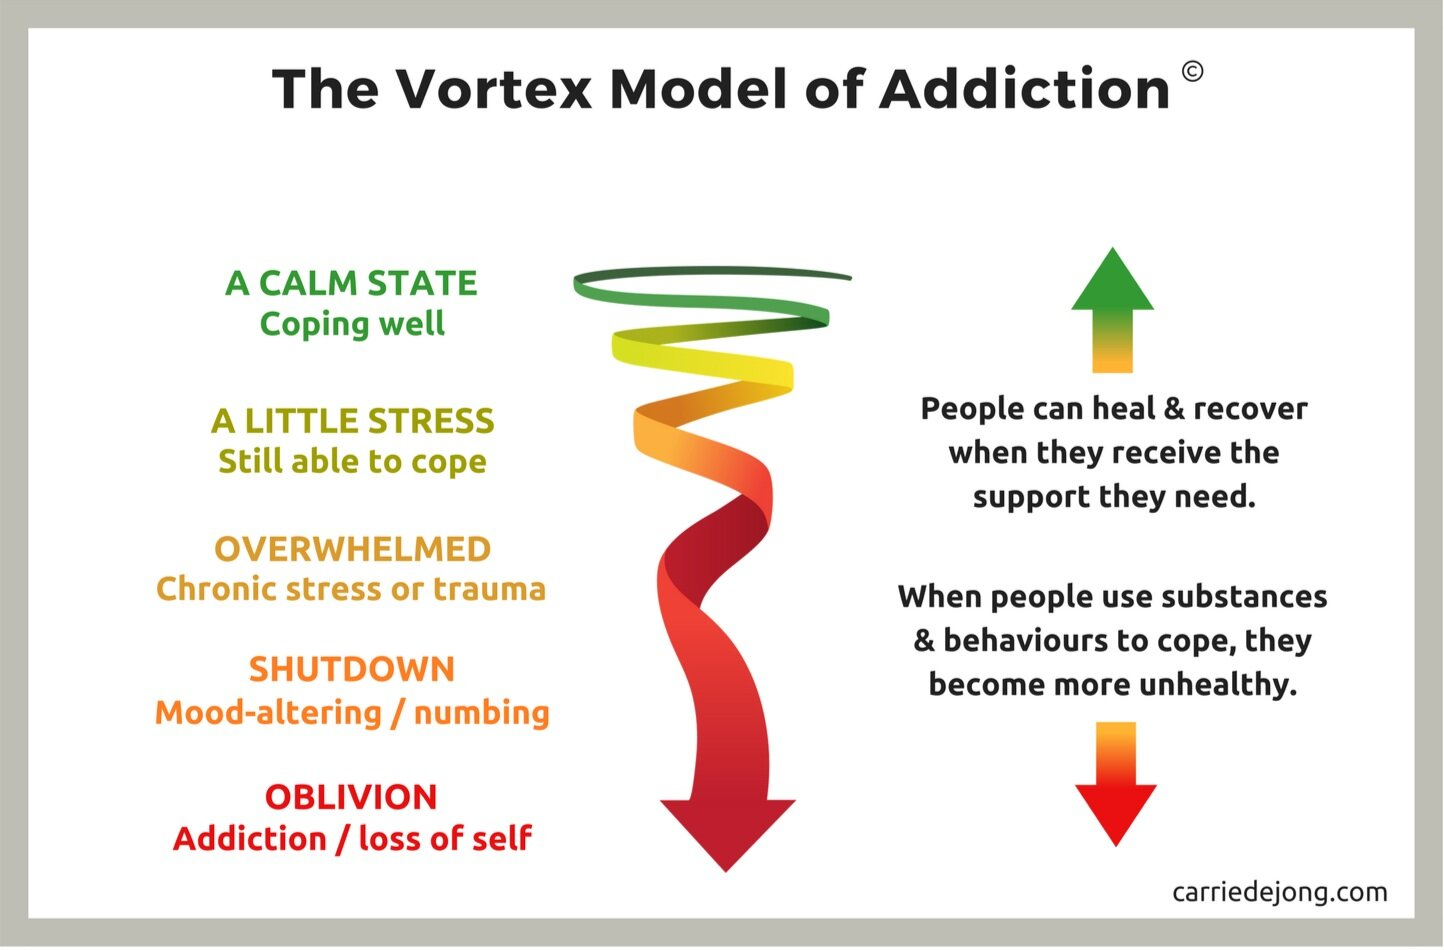 Vortex Model of Addiction